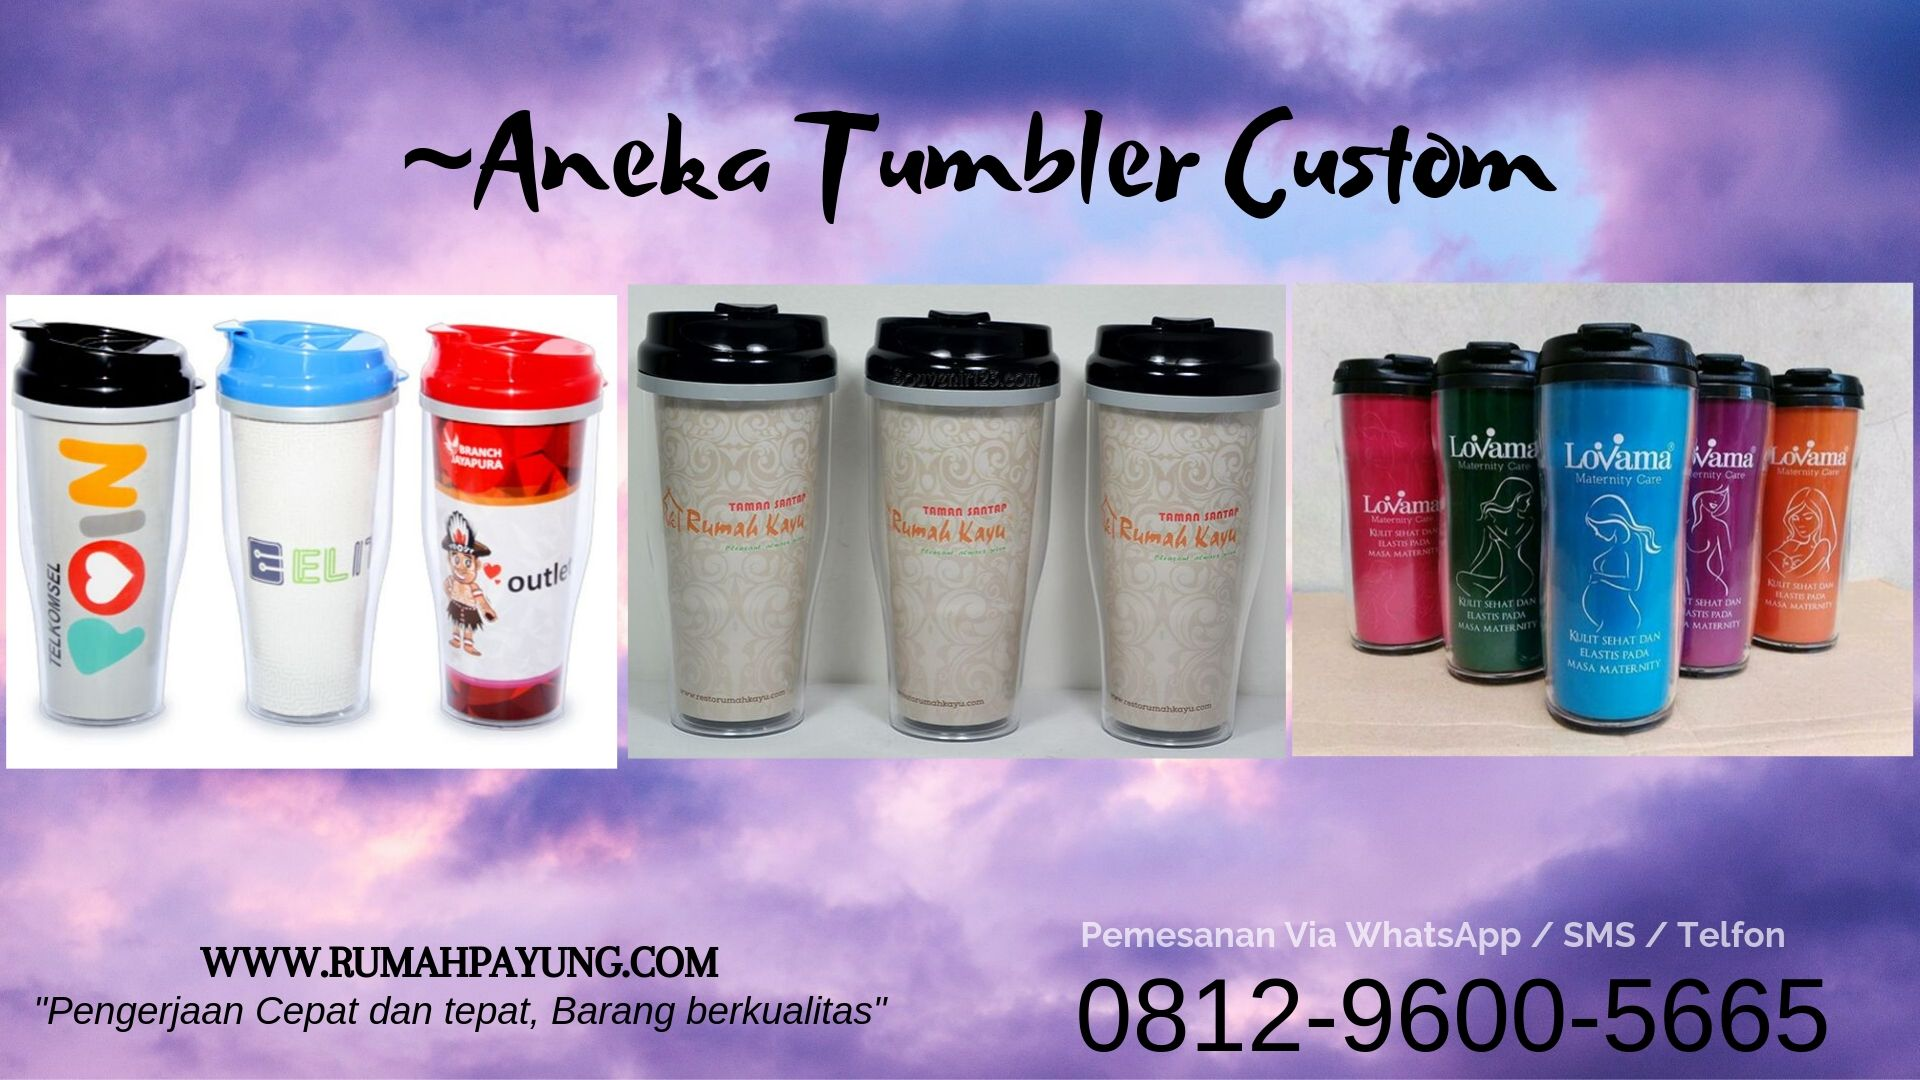 "JUAL GROSIR TUMBLER CUSTOM DESIGN LOGO HARGA TERMURAH DI PEKALONGAN<span class=""rating-result after_title mr-filter rating-result-12386"">			<span class=""no-rating-results-text"">No ratings yet.</span>		</span>"